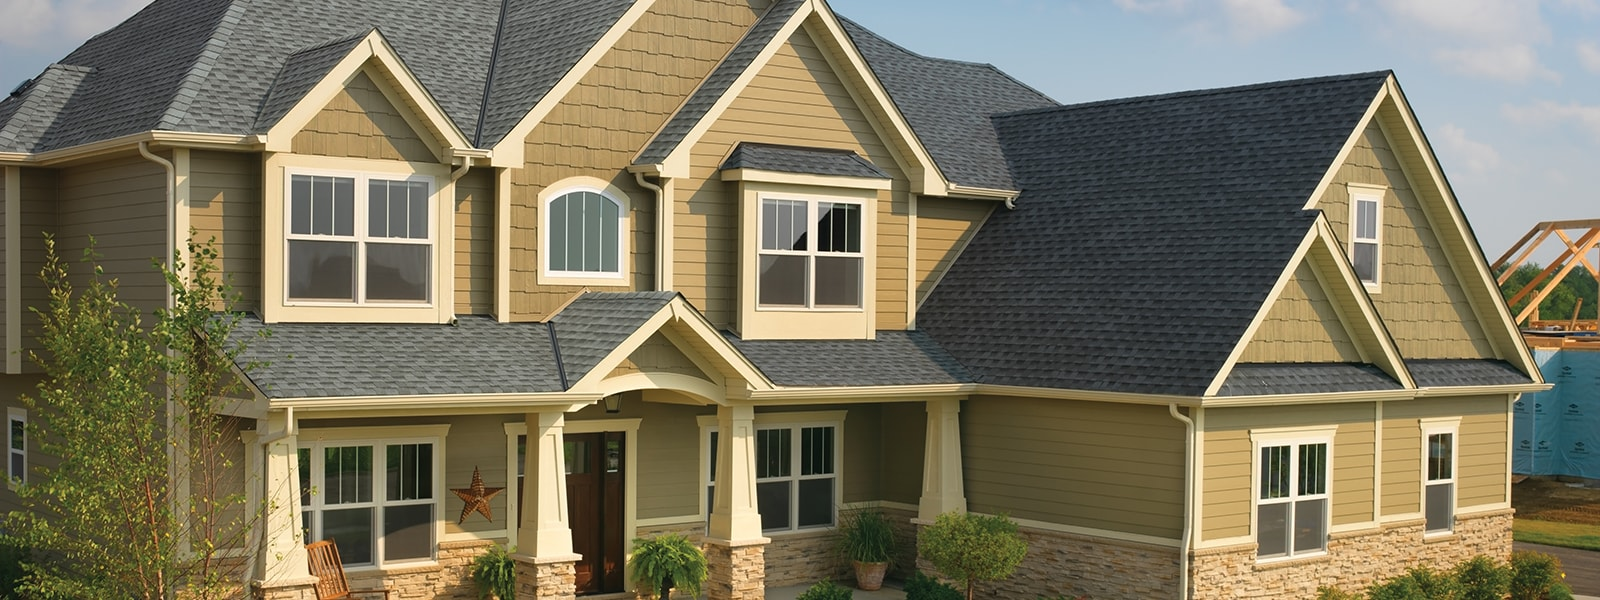 Amherst Roofing Contractor Roof Repairs Amherst Wi